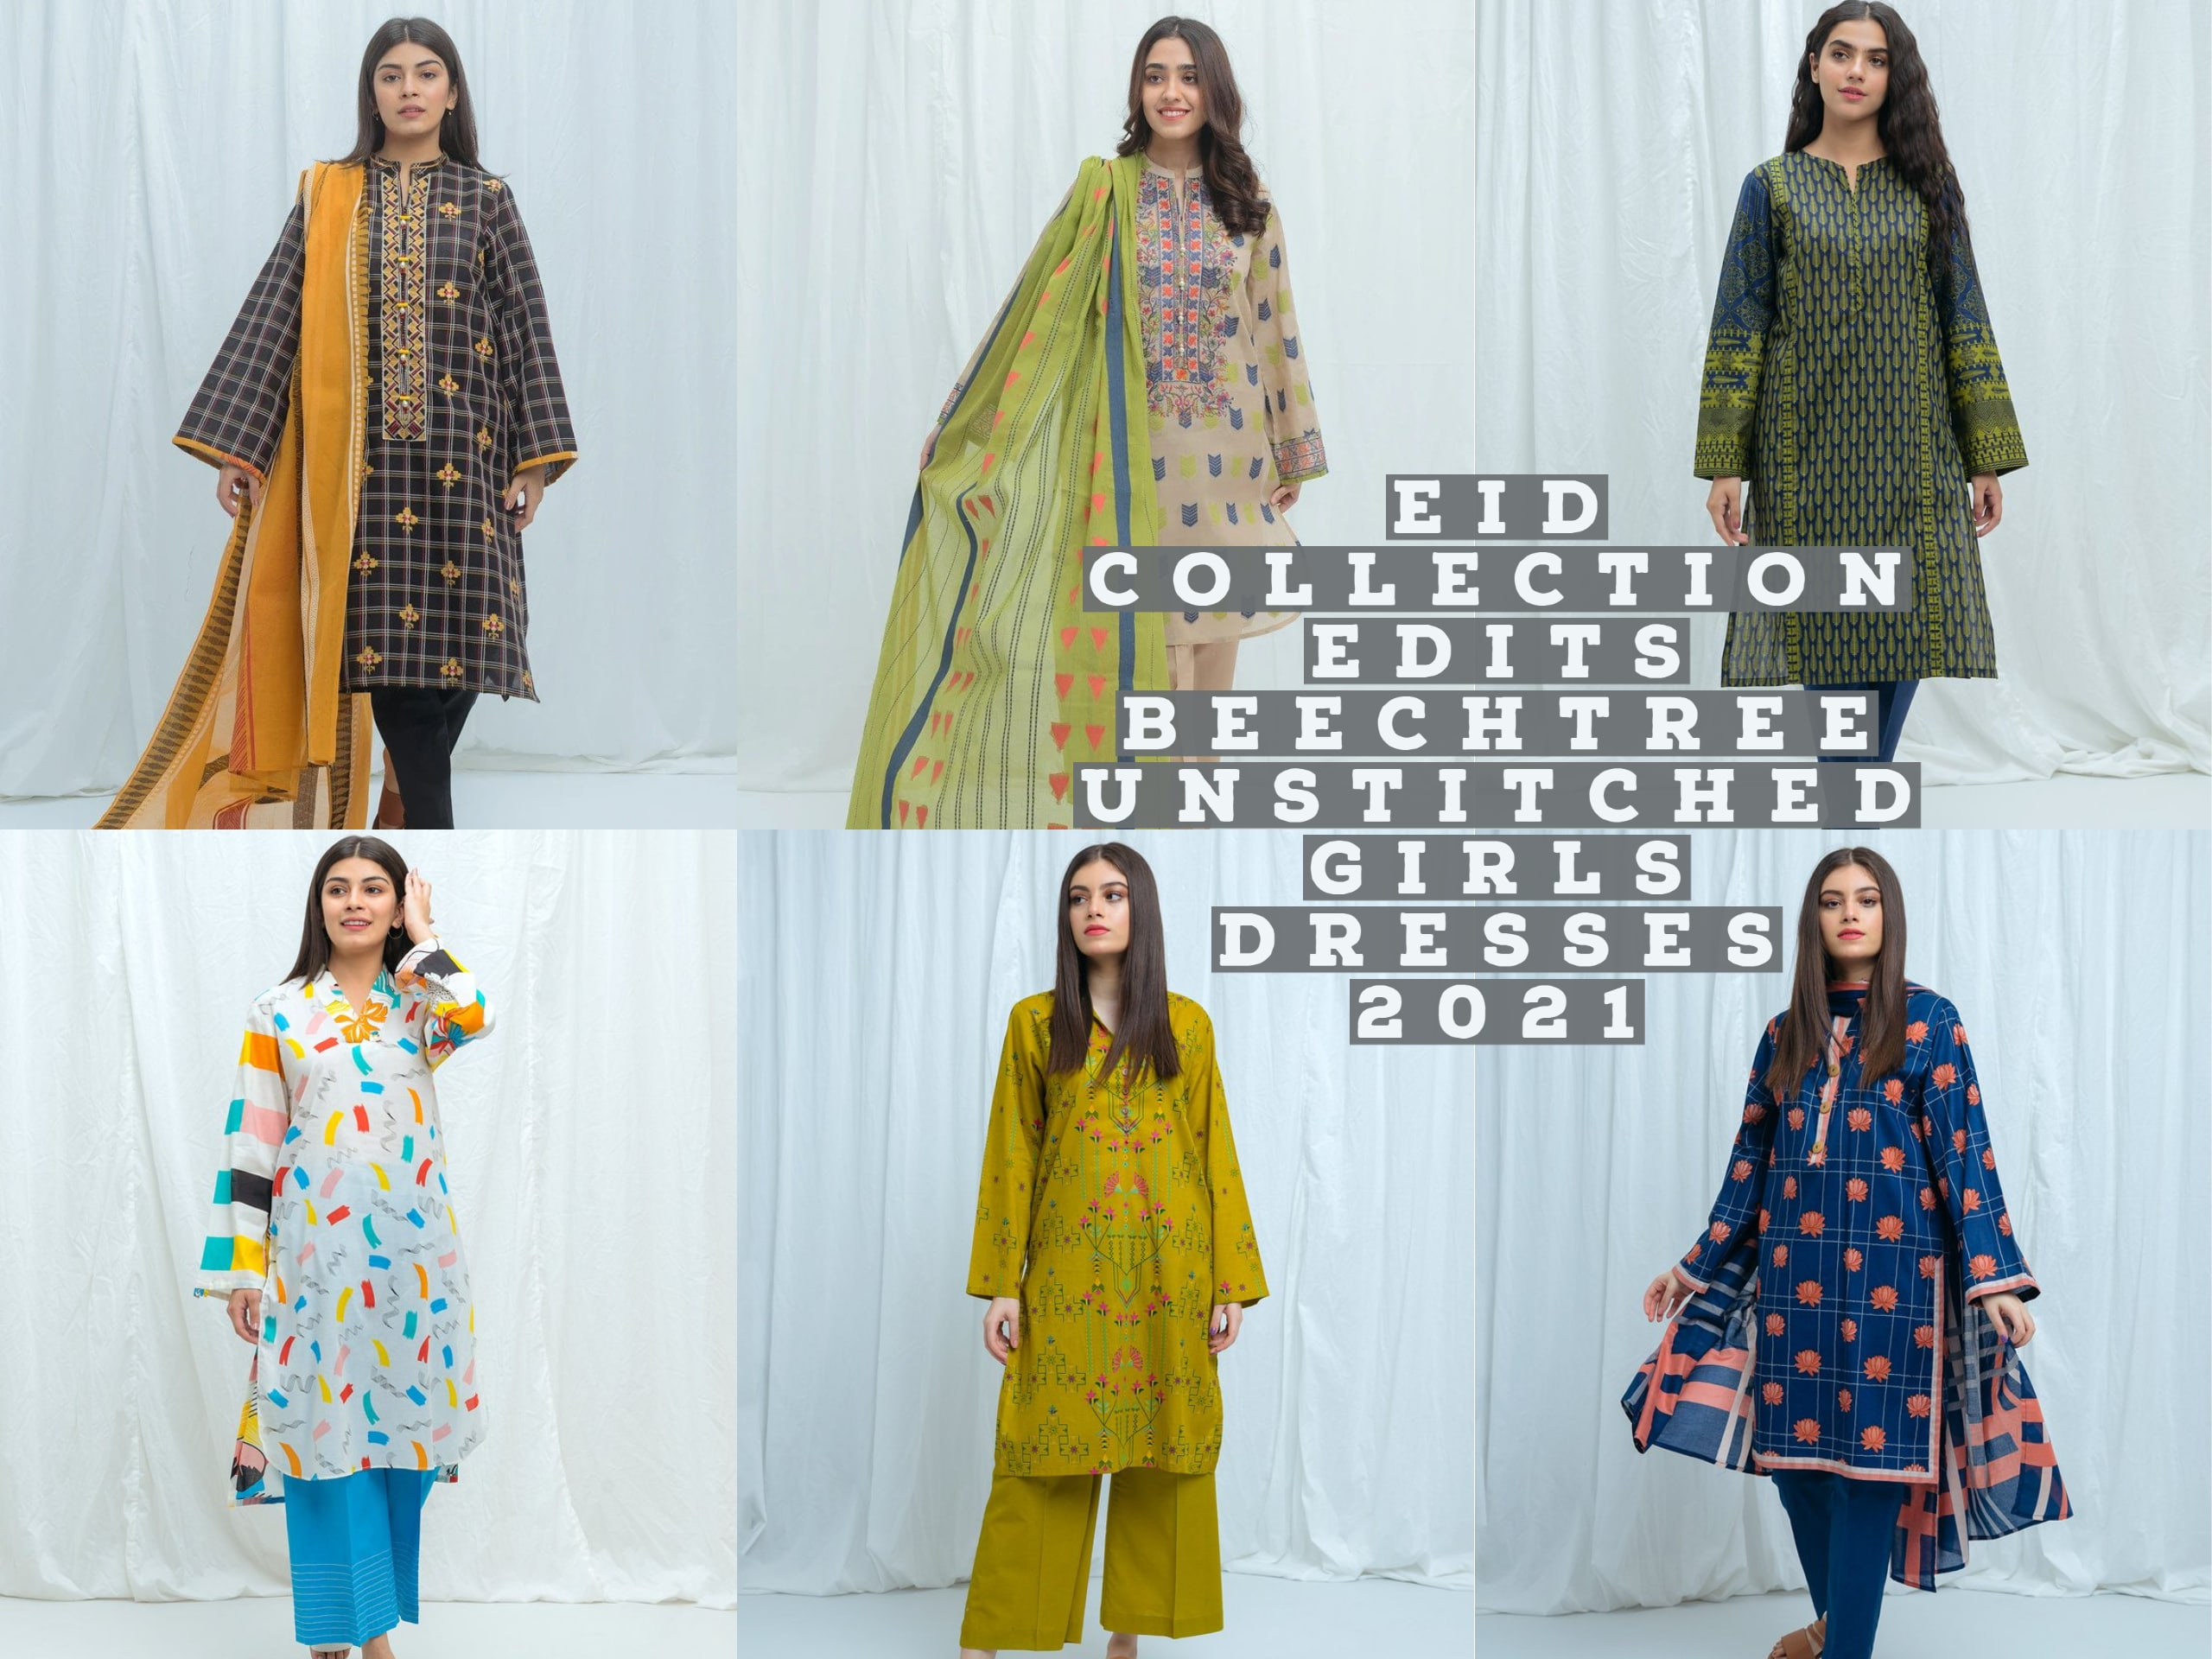 Eid Collection Edits: Beechtree Unstitched Girls Dresses 2021